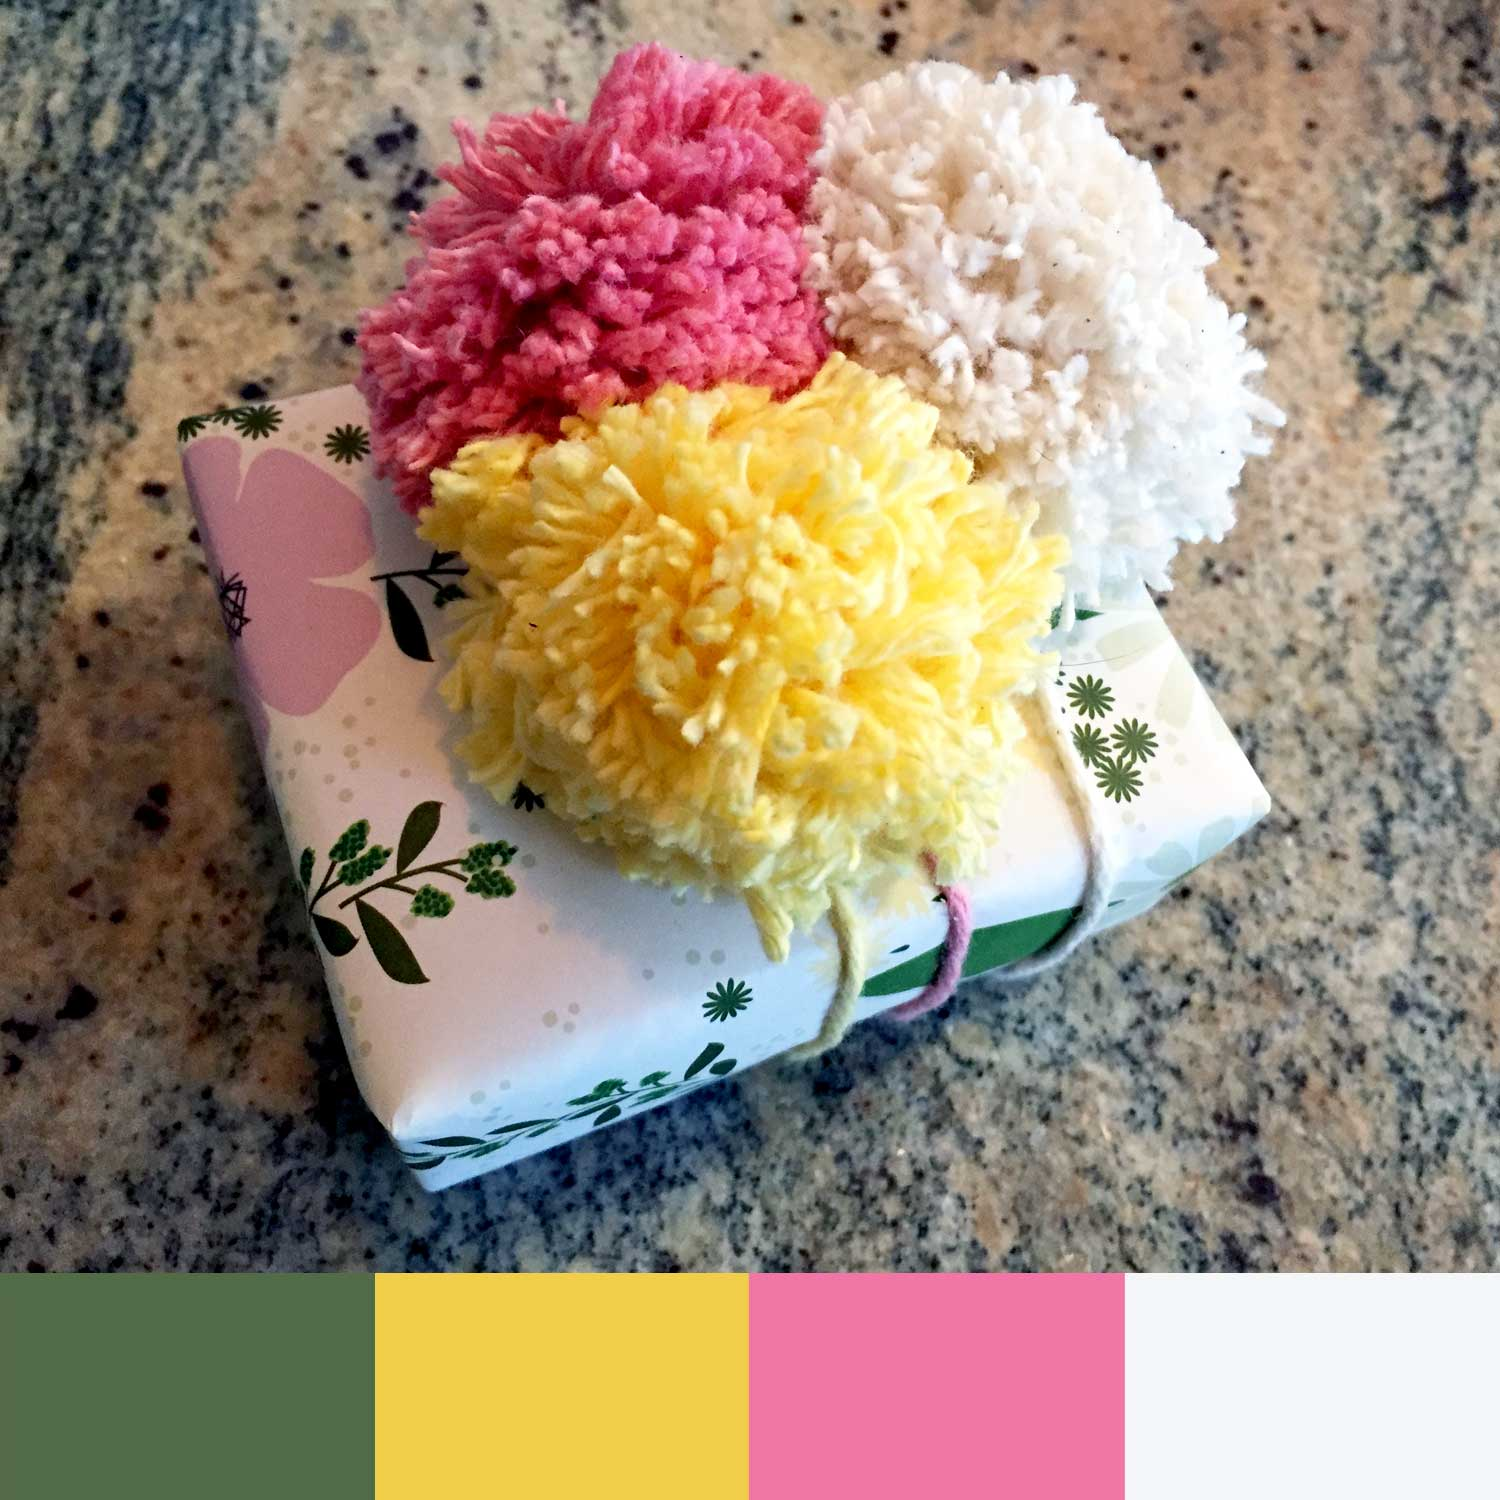 Pom poms make a gift wrap better and inspired this week's happy color palette